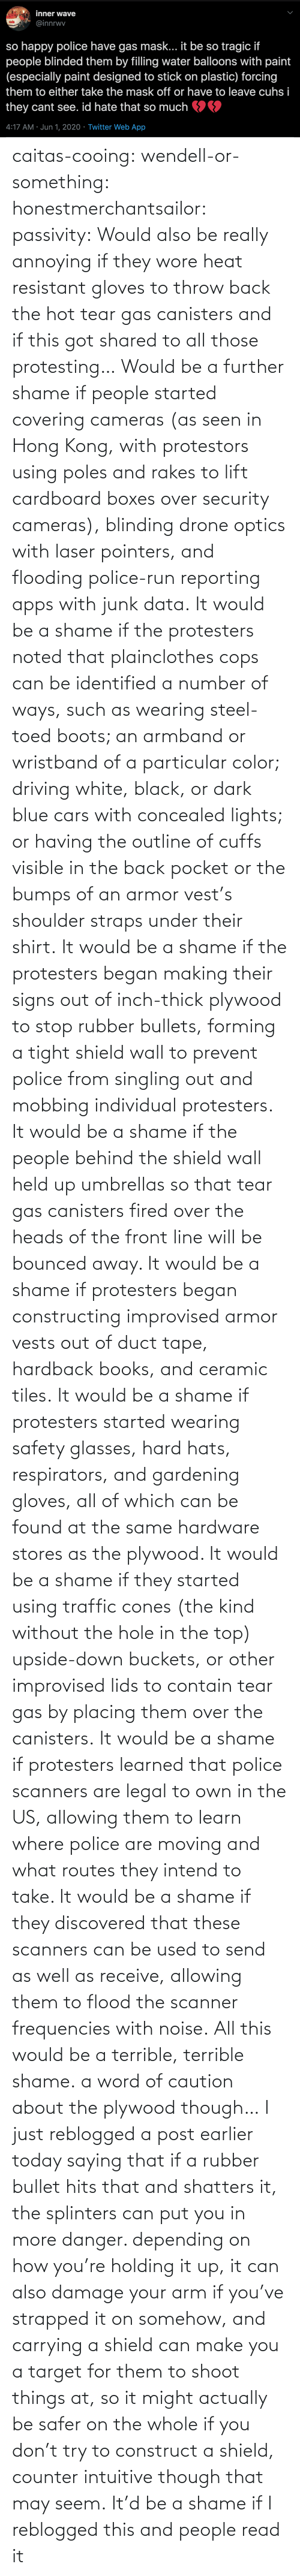 White: caitas-cooing:  wendell-or-something: honestmerchantsailor:  passivity: Would also be really annoying if they wore heat resistant gloves to throw back the hot tear gas canisters and if this got shared to all those protesting… Would be a further shame if people started covering cameras (as seen in Hong Kong, with protestors using poles and rakes to lift cardboard boxes over security cameras), blinding drone optics with laser pointers, and flooding police-run reporting apps with junk data. It would be a shame if the protesters noted that plainclothes cops can be identified a number of ways, such as wearing steel-toed boots; an armband or wristband of a particular color; driving white, black, or dark blue cars with concealed lights; or having the outline of cuffs visible in the back pocket or the bumps of an armor vest's shoulder straps under their shirt. It would be a shame if the protesters began making their signs out of inch-thick plywood to stop rubber bullets, forming a tight shield wall to prevent police from singling out and mobbing individual protesters. It would be a shame if the people behind the shield wall held up umbrellas so that tear gas canisters fired over the heads of the front line will be bounced away. It would be a shame if protesters began constructing improvised armor vests out of duct tape, hardback books, and ceramic tiles. It would be a shame if protesters started wearing safety glasses, hard hats, respirators, and gardening gloves, all of which can be found at the same hardware stores as the plywood. It would be a shame if they started using traffic cones (the kind without the hole in the top) upside-down buckets, or other improvised lids to contain tear gas by placing them over the canisters. It would be a shame if protesters learned that police scanners are legal to own in the US, allowing them to learn where police are moving and what routes they intend to take. It would be a shame if they discovered that these scanners can be used to send as well as receive, allowing them to flood the scanner frequencies with noise. All this would be a terrible, terrible shame.    a word of caution about the plywood though… I just reblogged a post earlier today saying that if a rubber bullet hits that and shatters it, the splinters can put you in more danger. depending on how you're holding it up, it can also damage your arm if you've strapped it on somehow, and carrying a shield can make you a target for them to shoot things at, so it might actually be safer on the whole if you don't try to construct a shield, counter intuitive though that may seem.    It'd be a shame if I reblogged this and people read it